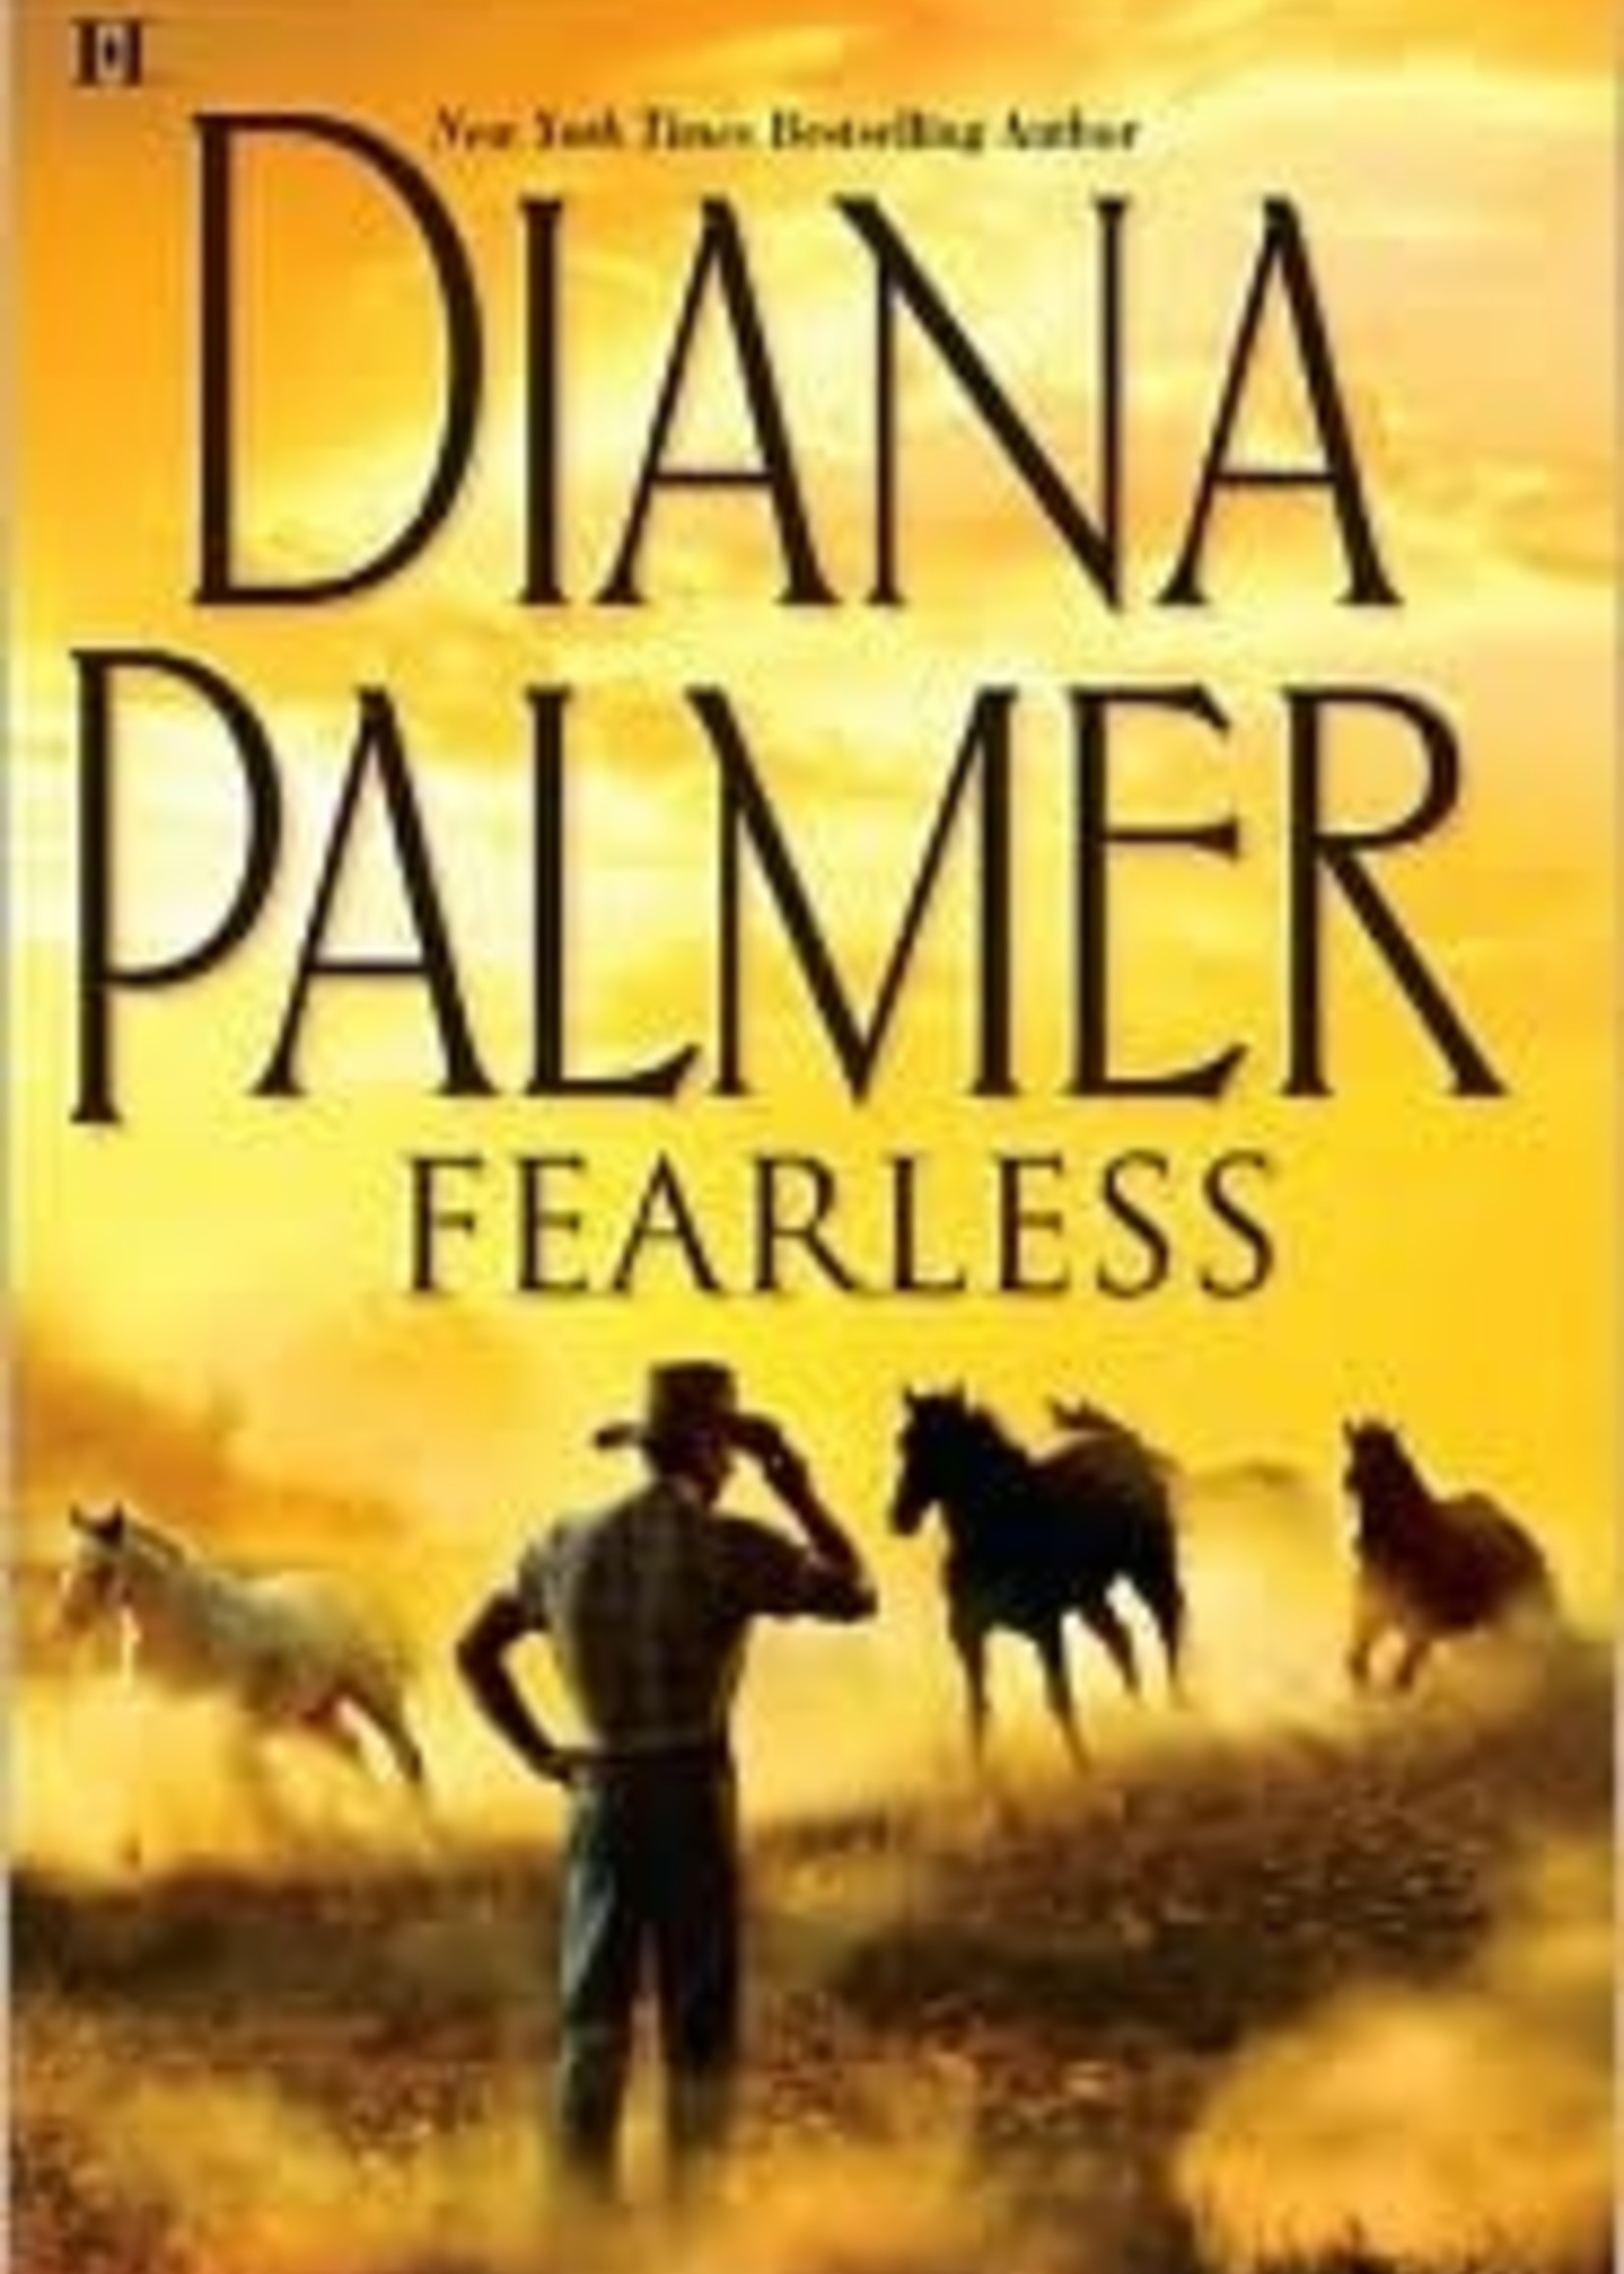 USED - Fearless by Diana Palmer